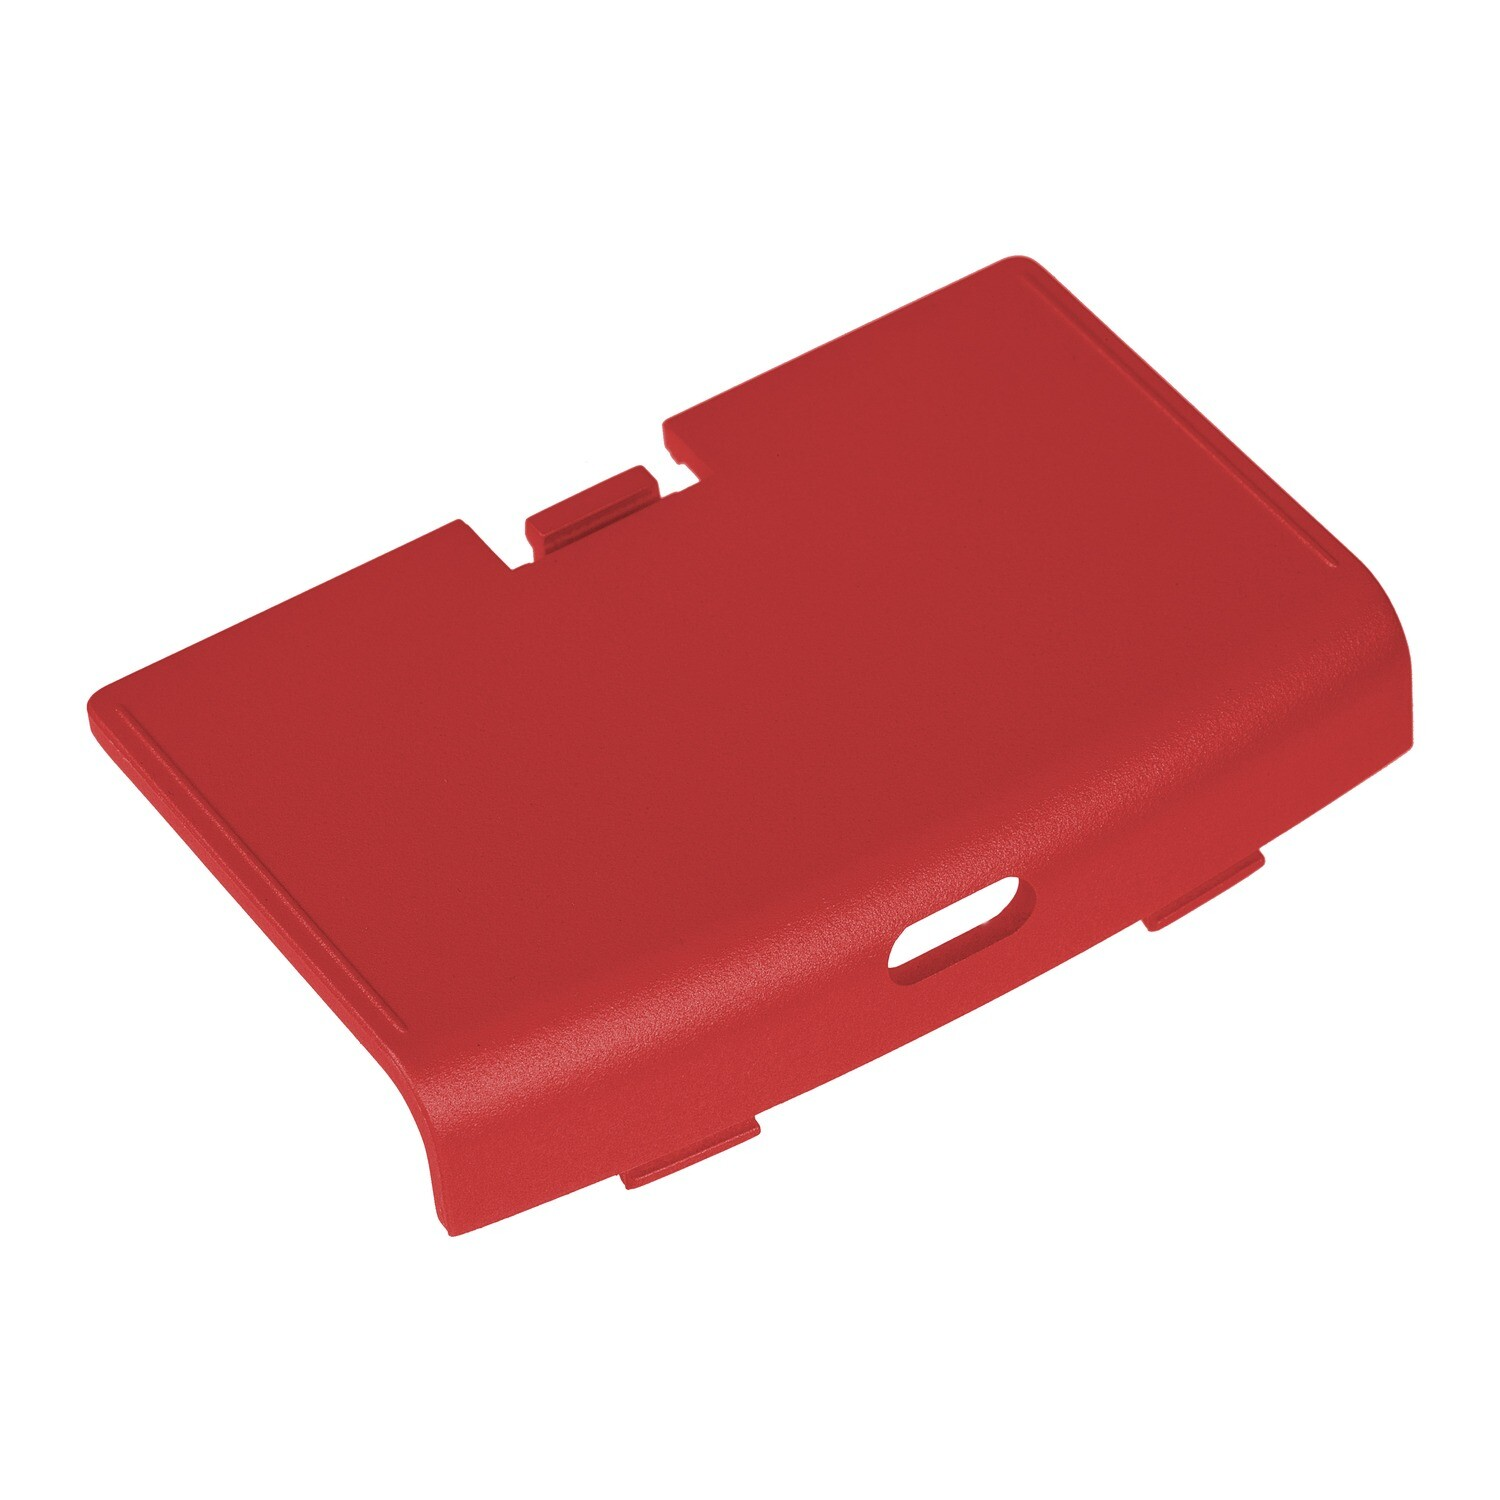 Game Boy Advance USB-C Battery Cover (Red)